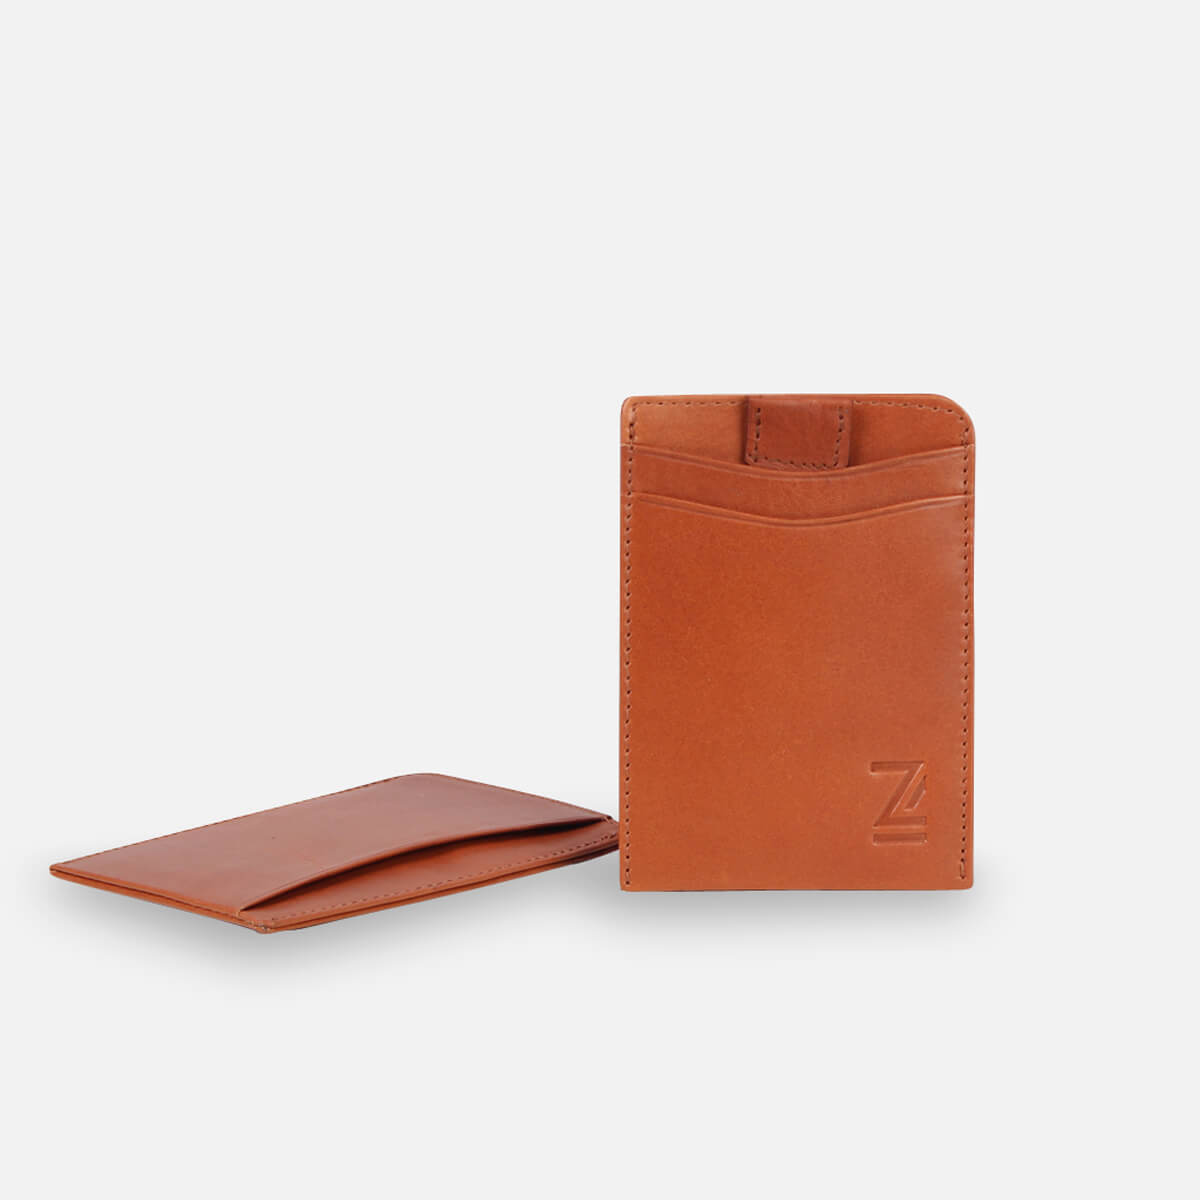 Zoomlite Tan leather minimal wallet with RFID protection